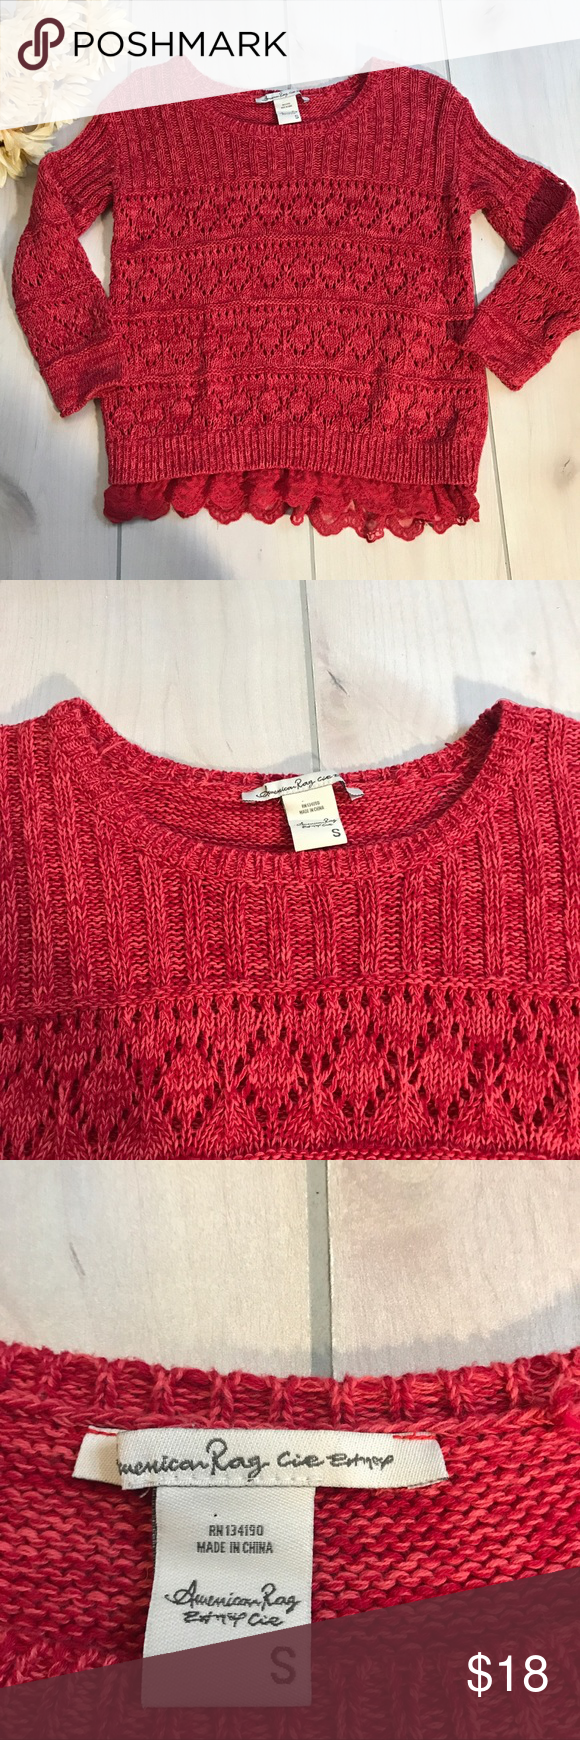 cddbd9be8 American Rag Red loose knit and lace sweater